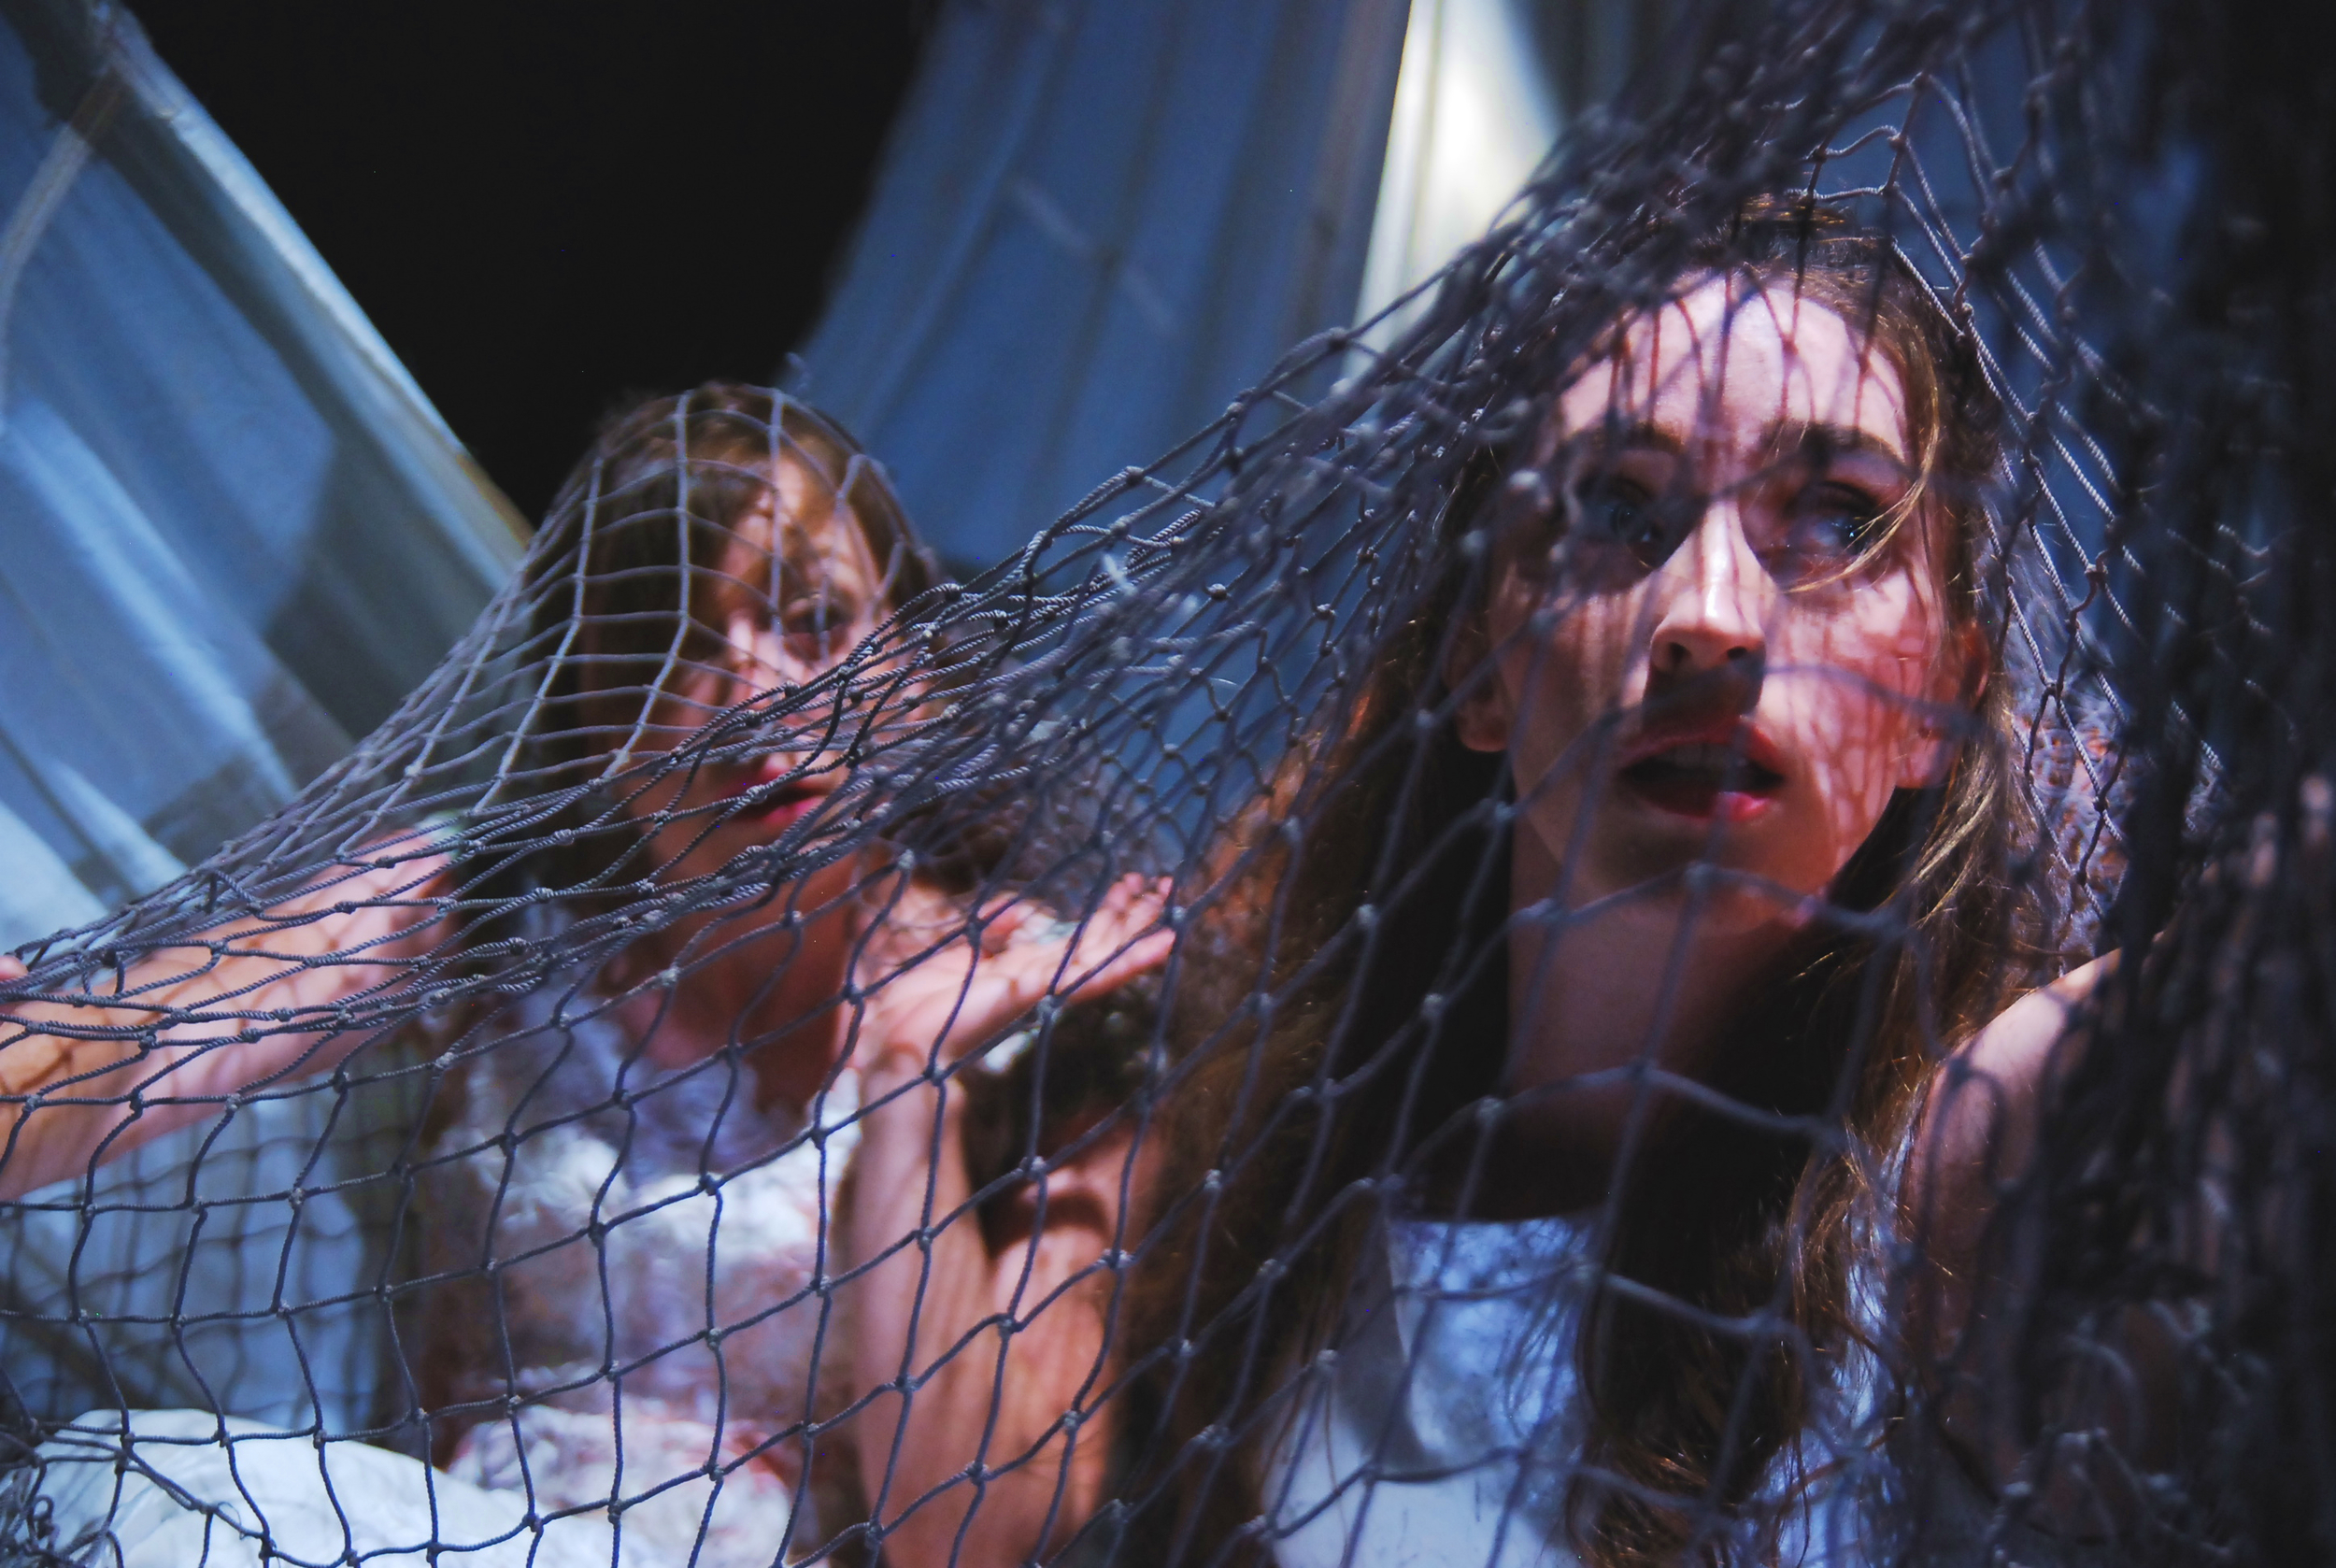 Jennice Butler (left)as Leta and Mercedes Manning (right) as Philomena in The Pliant Girls , Fugitive Kind's Ovation Award-winning production loosely based on Aeschylus's The Suppliants .  Photo courtesy of Amanda McRaven   Download print quality(300 dpi)